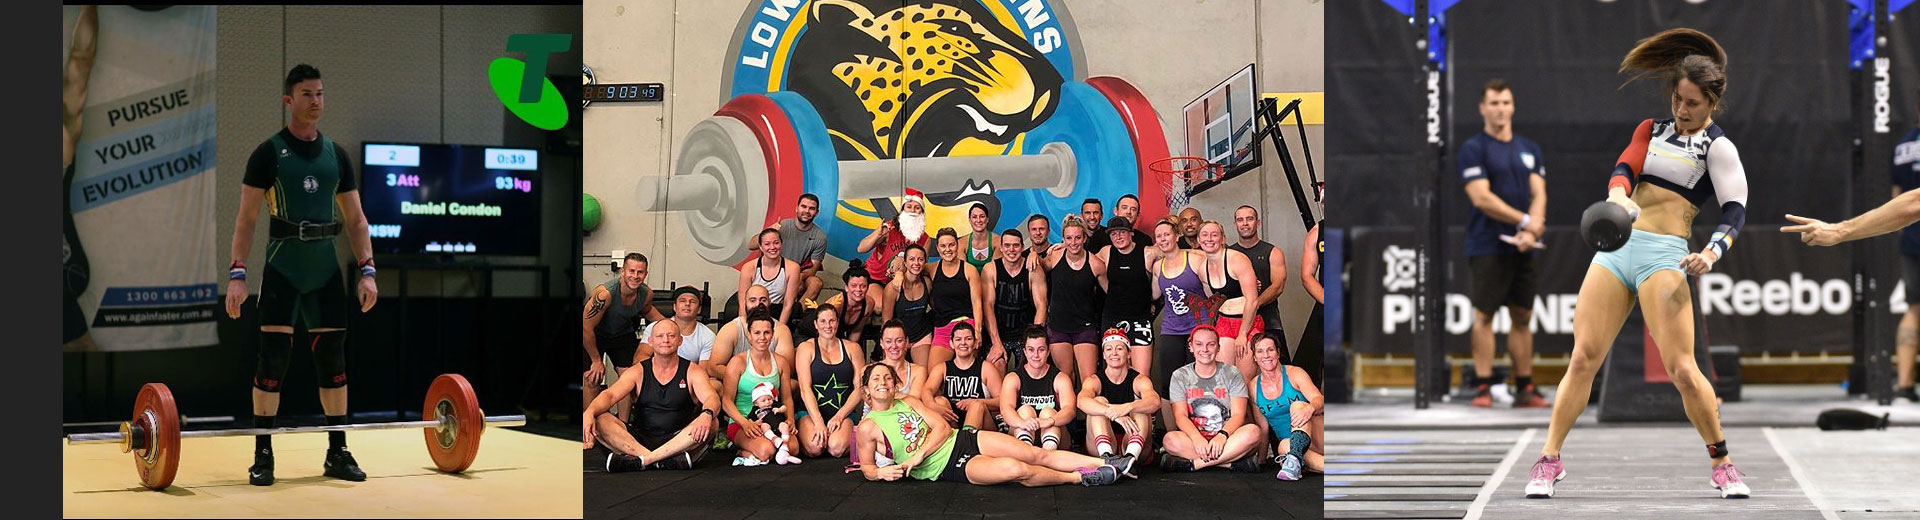 CrossFit-Lower-Mountains-Penrith2